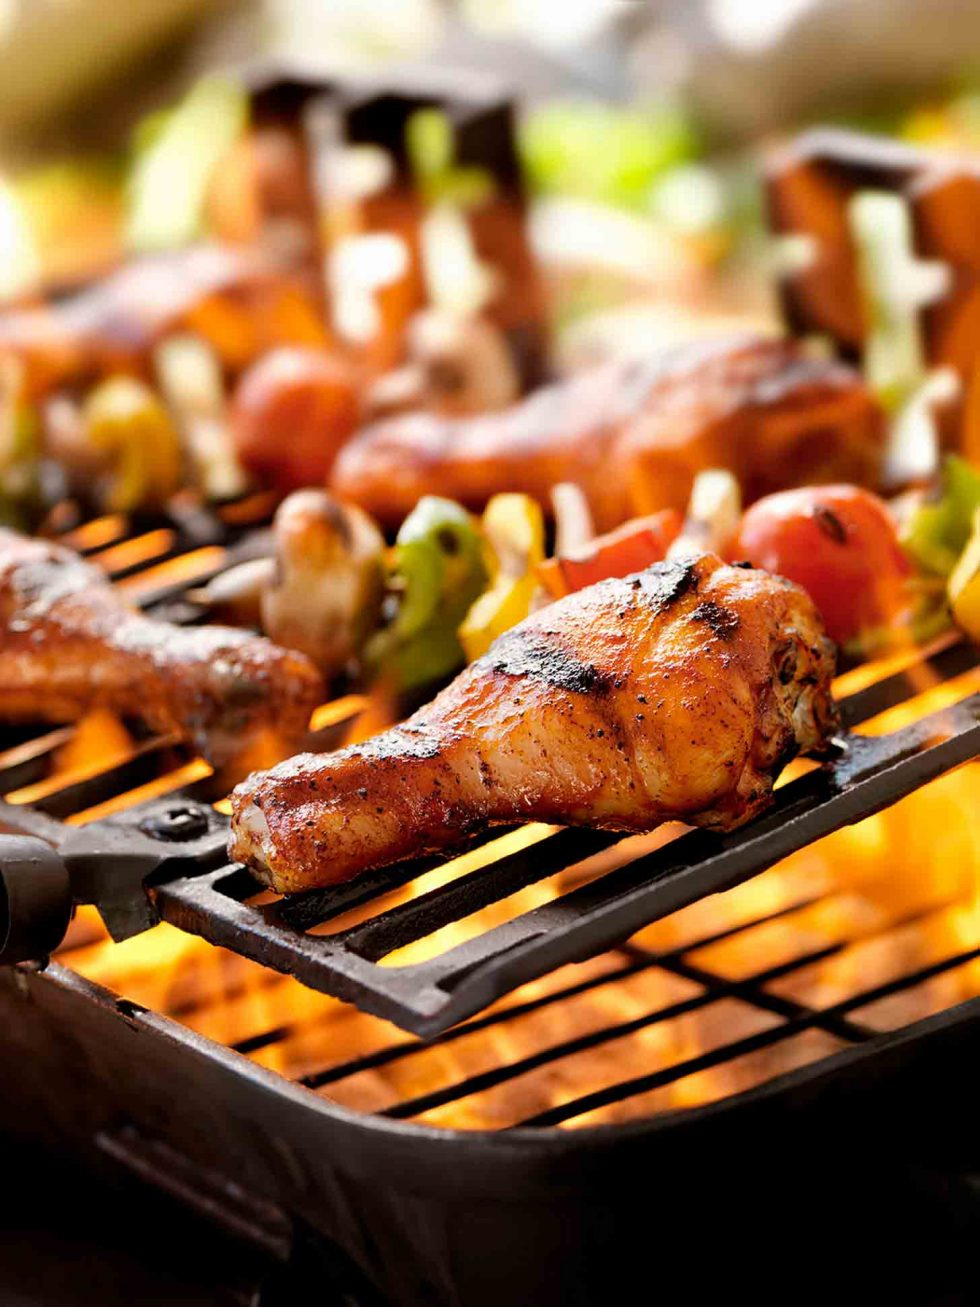 Calgary Food Photography. Chicken drumsticks and veggie skewers on the barbeque.